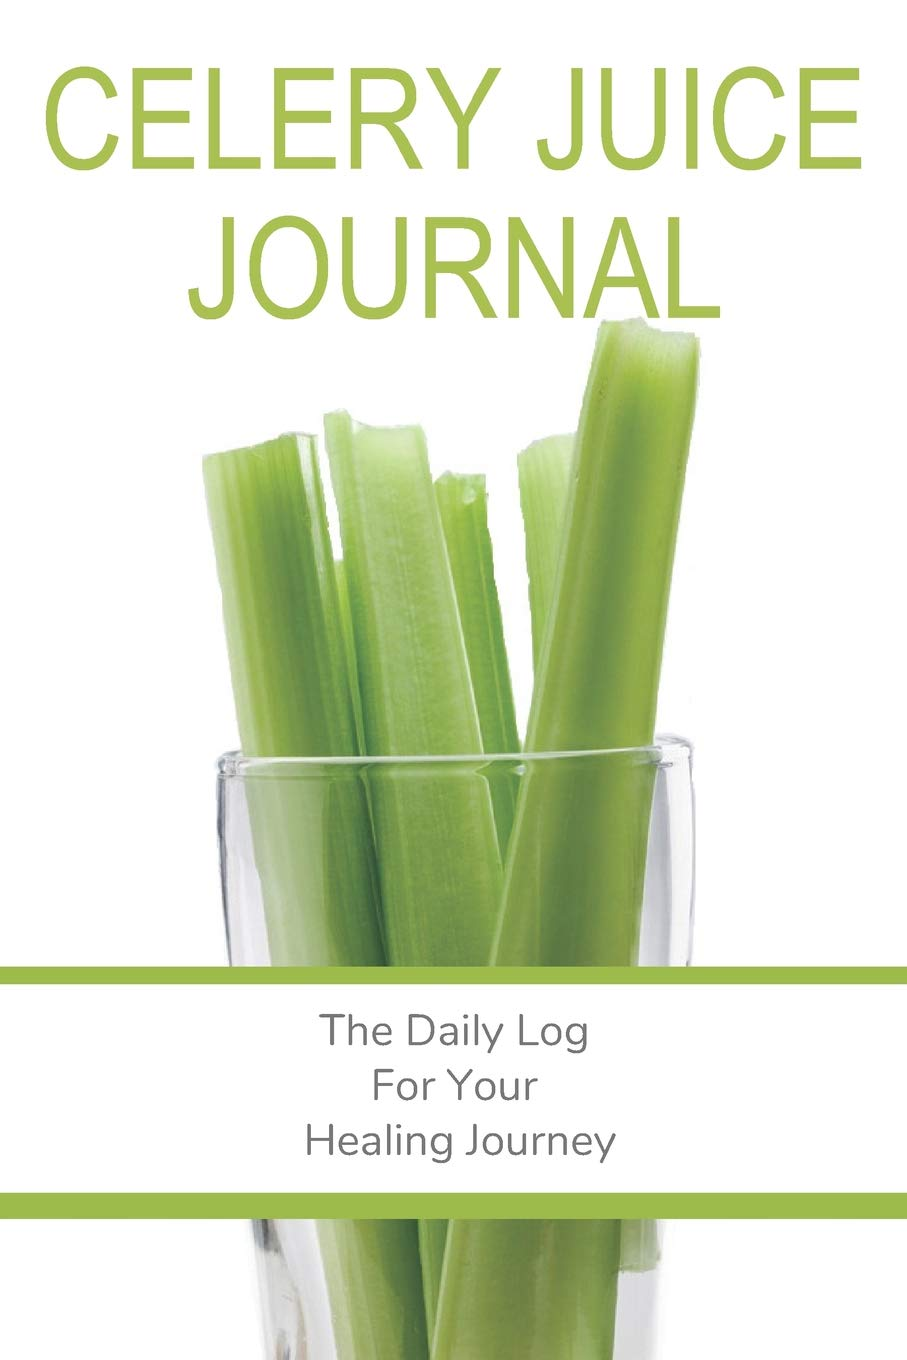 Celery Juice Journal: The Daily Log For Your Healing Journey